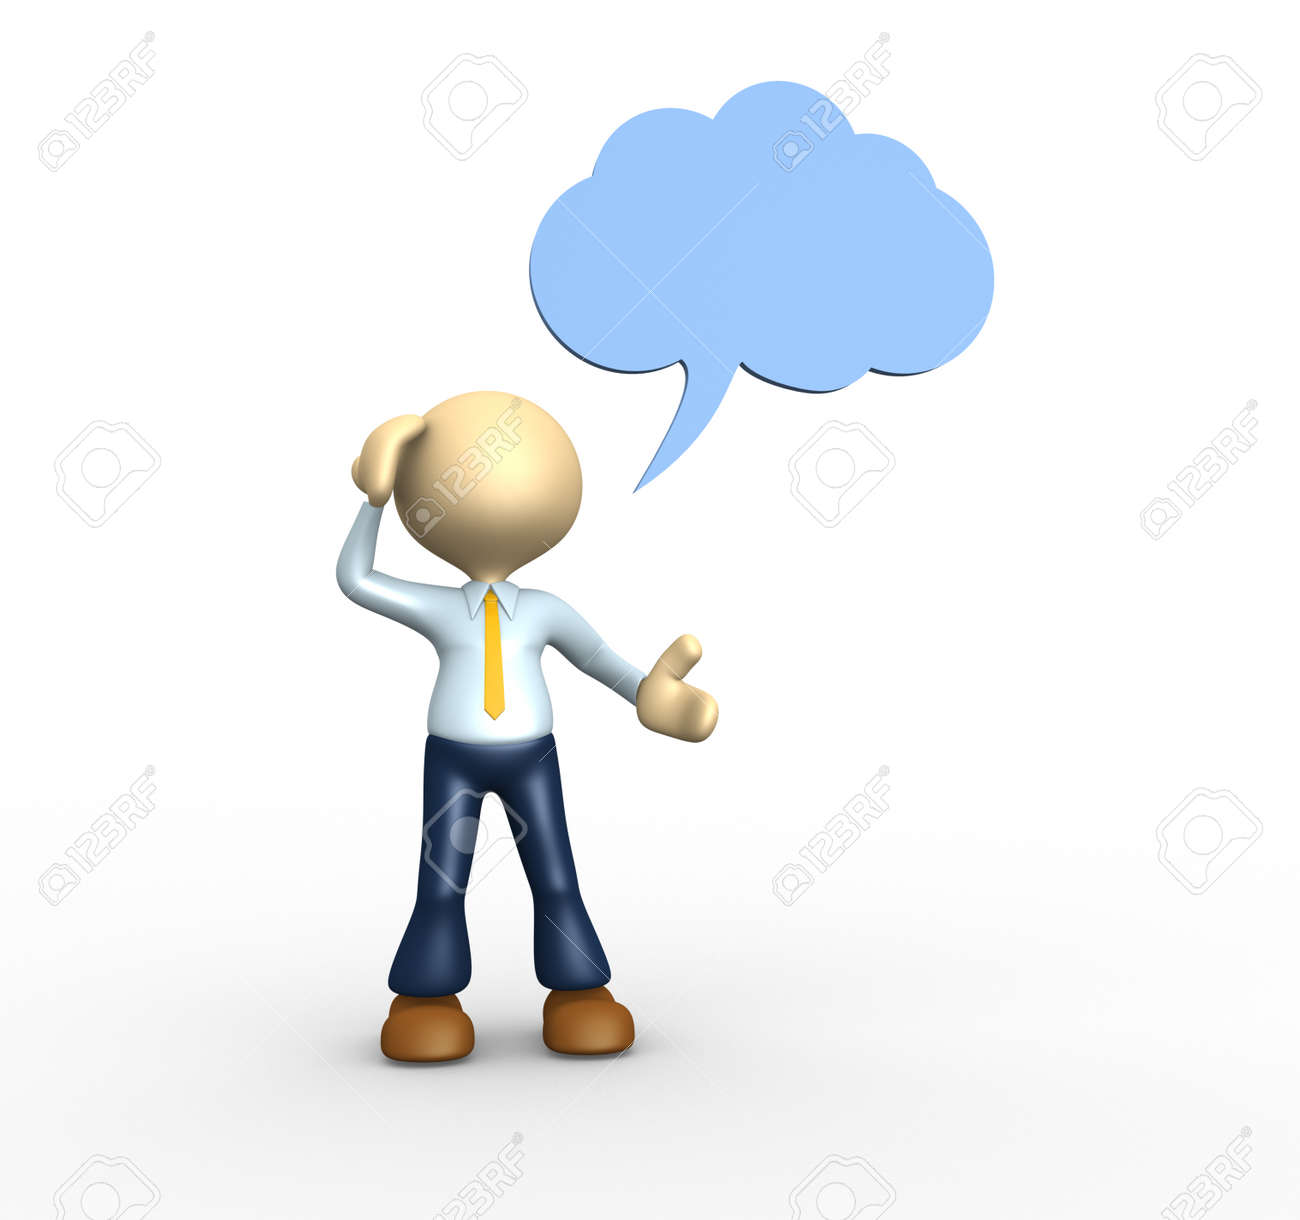 3d people - man, person thinking with thought bubble above his head over Stock Photo - 25021723